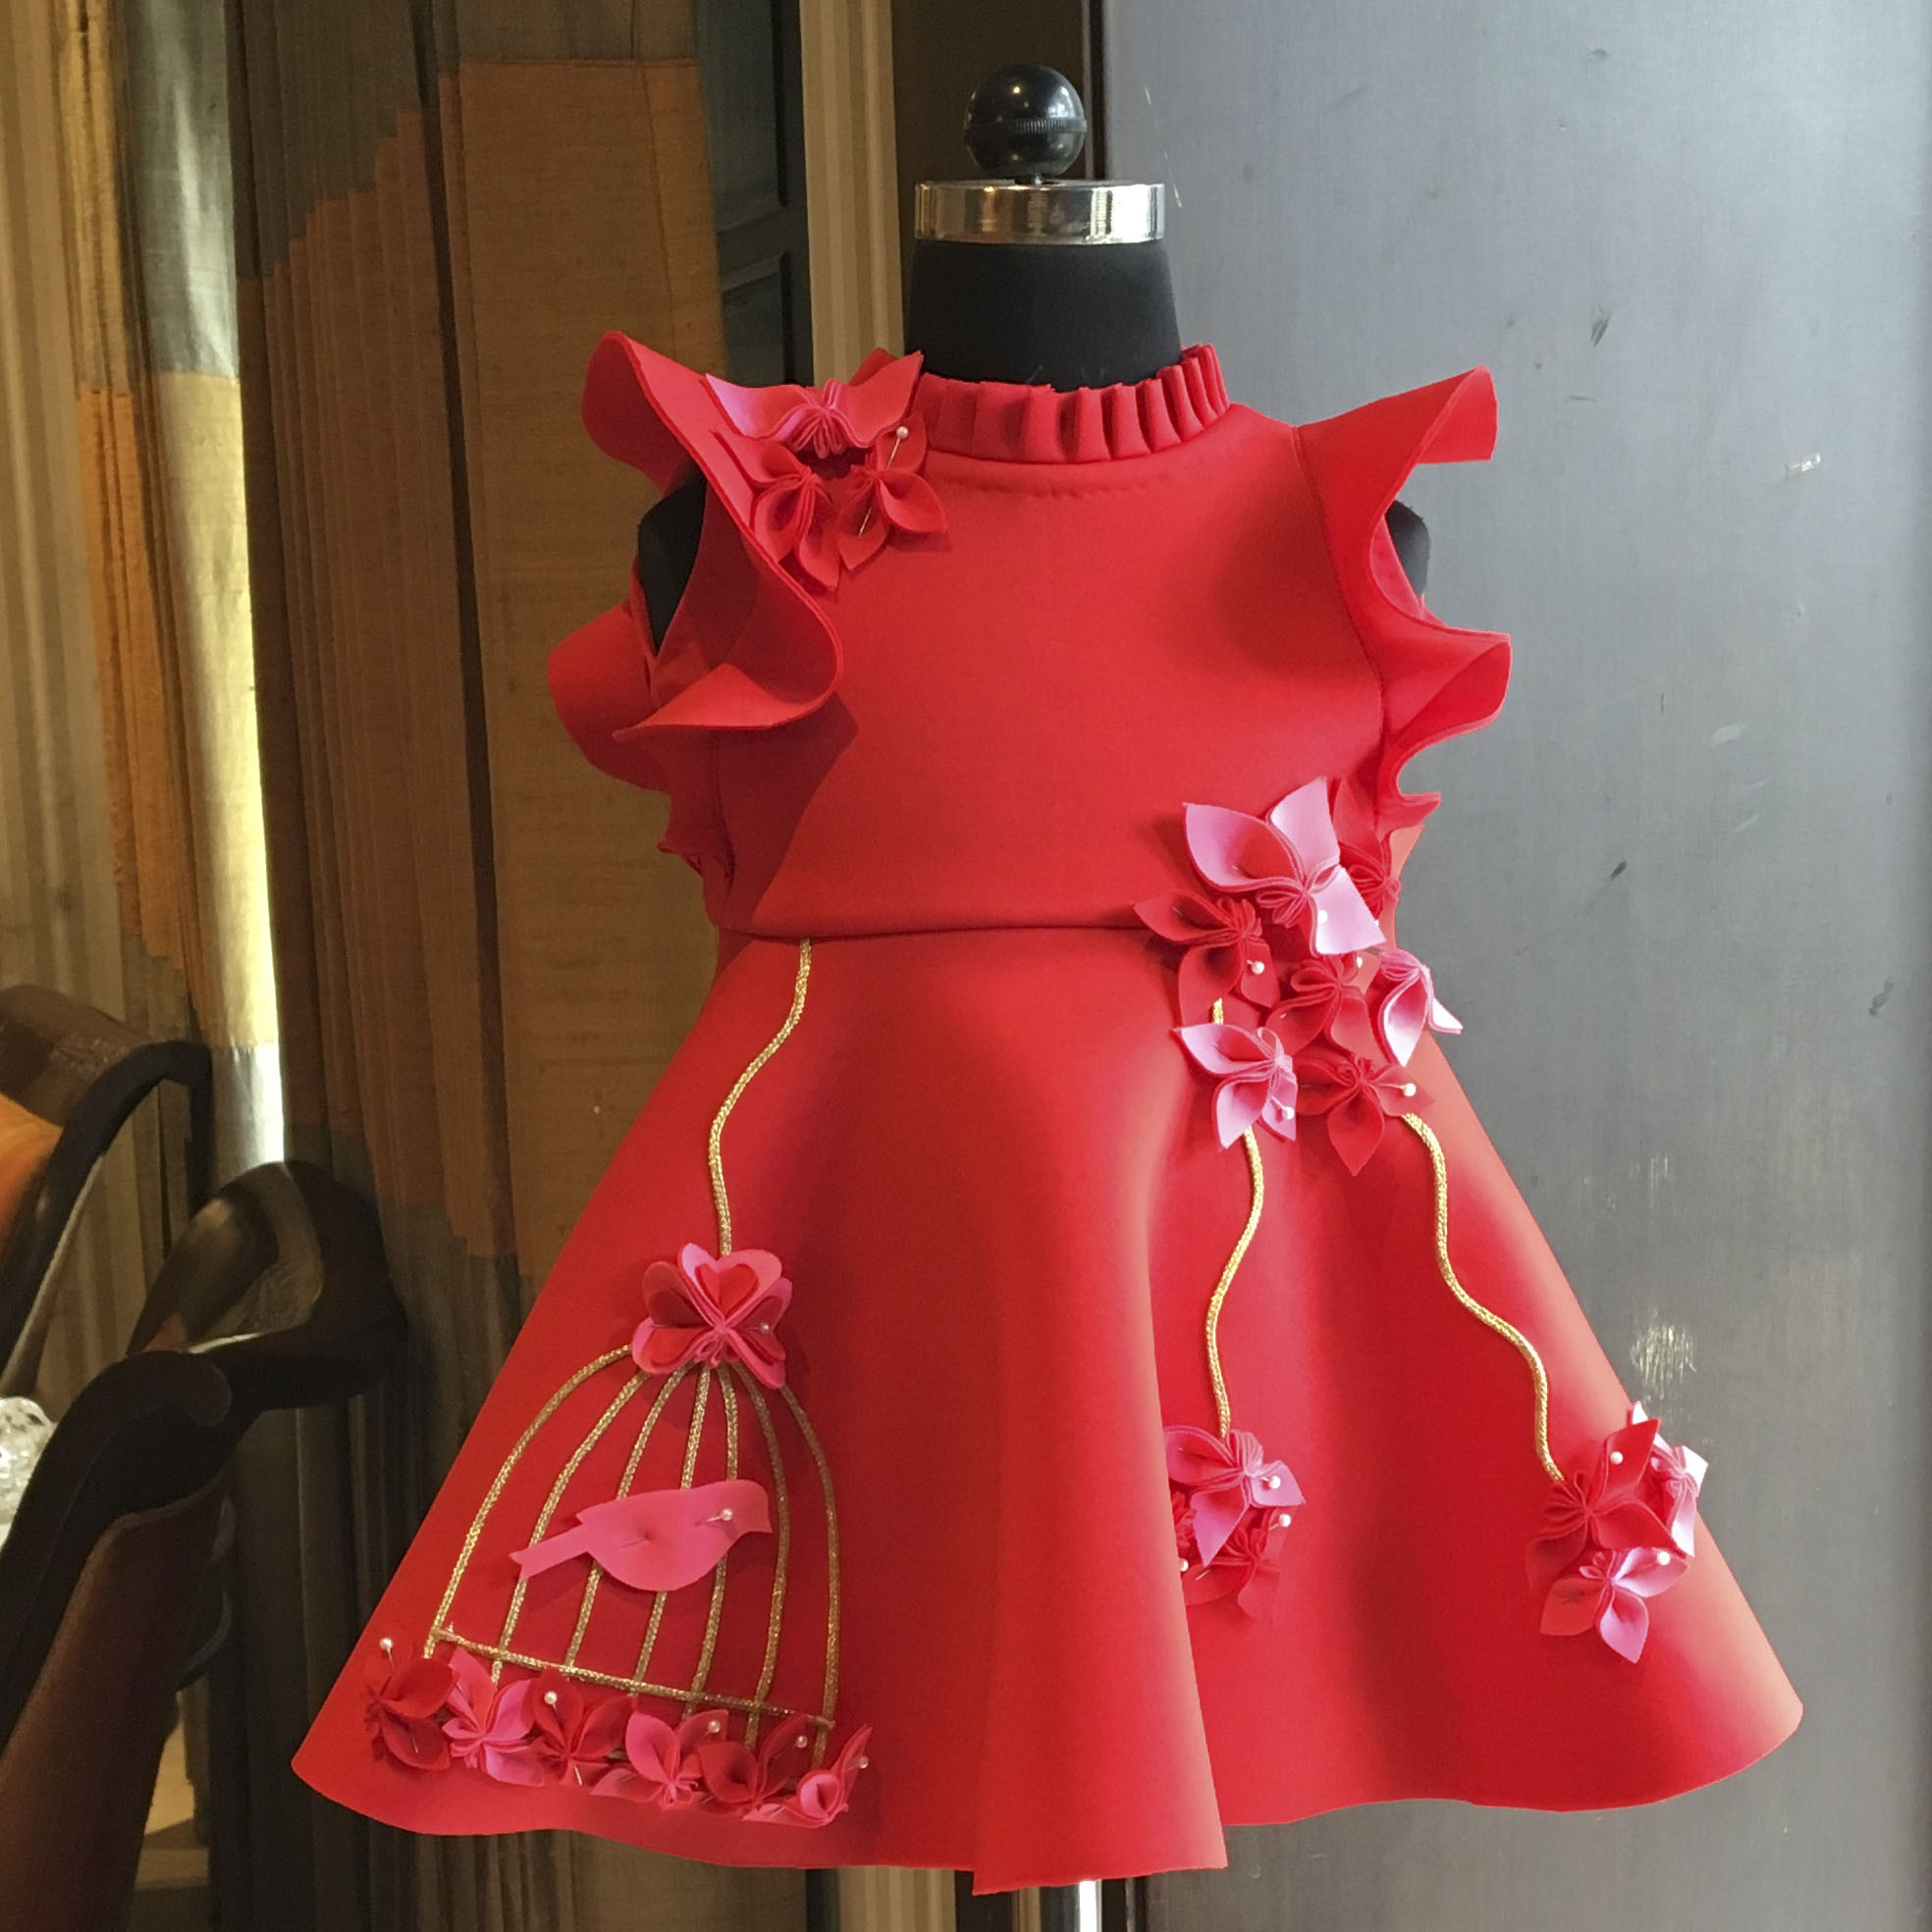 Red fuchsia pink bird cage dress